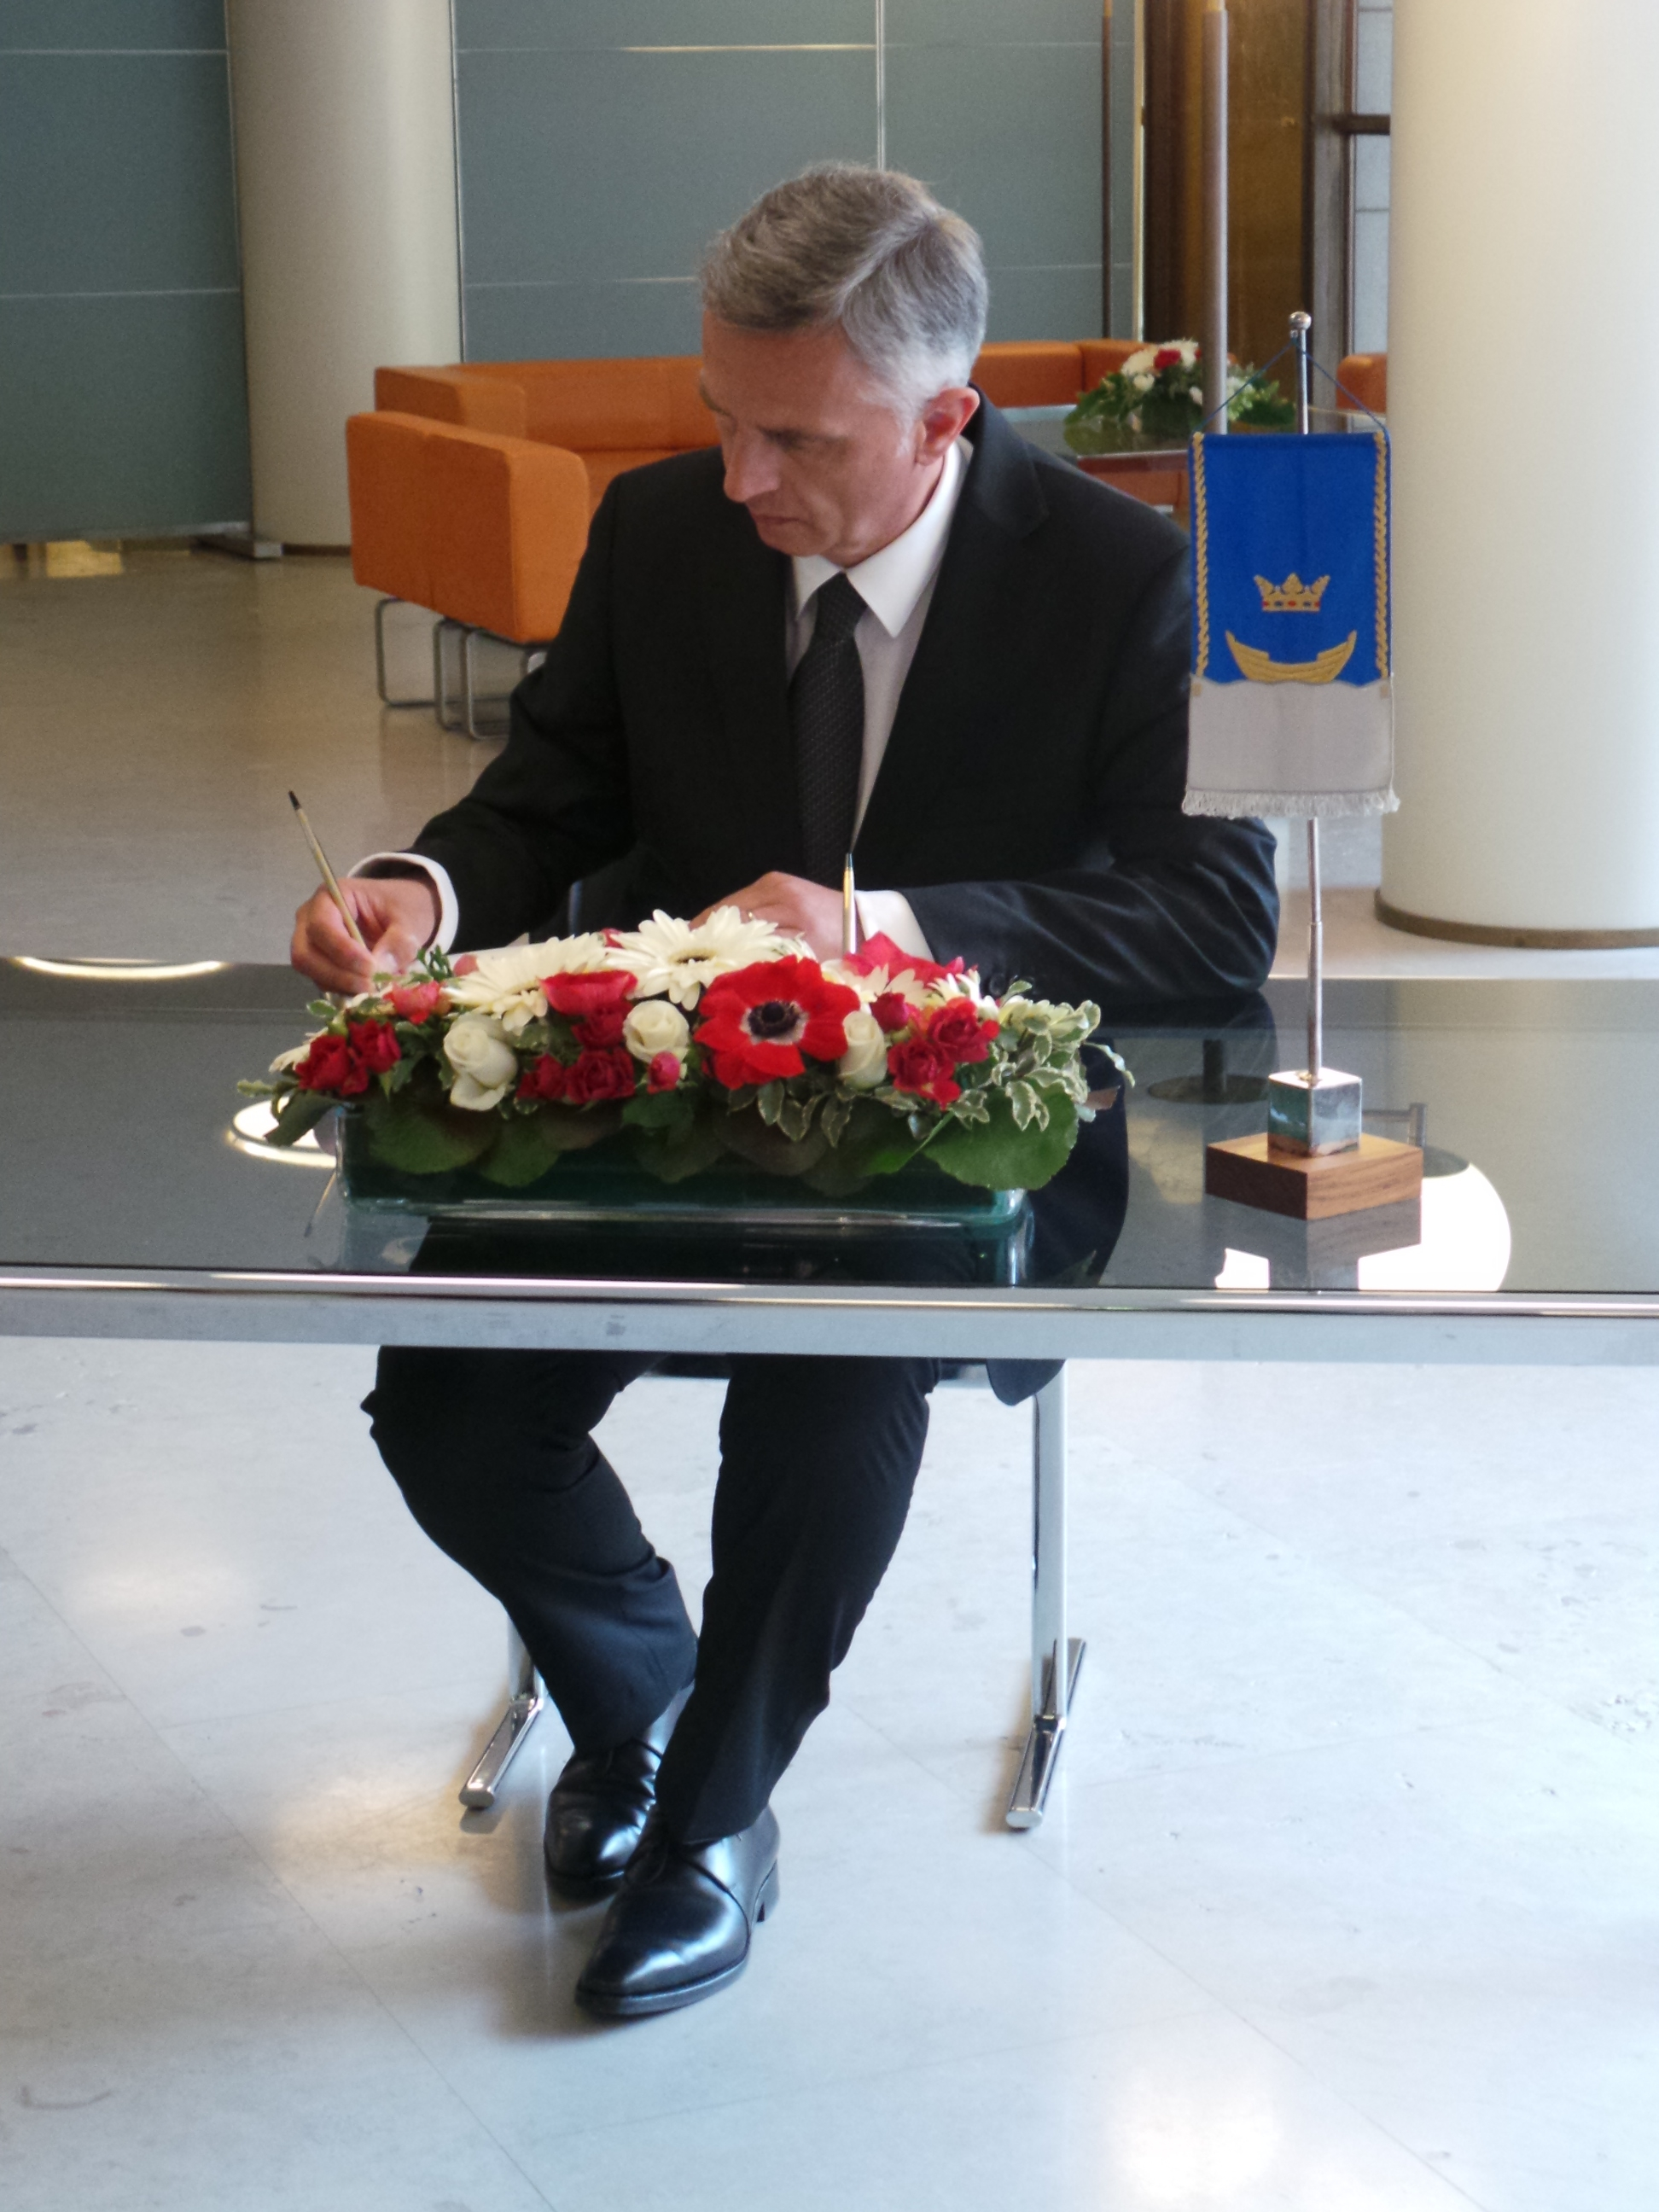 Didier Burkhalter enters his name in the Golden Book of the city of Helsinki.